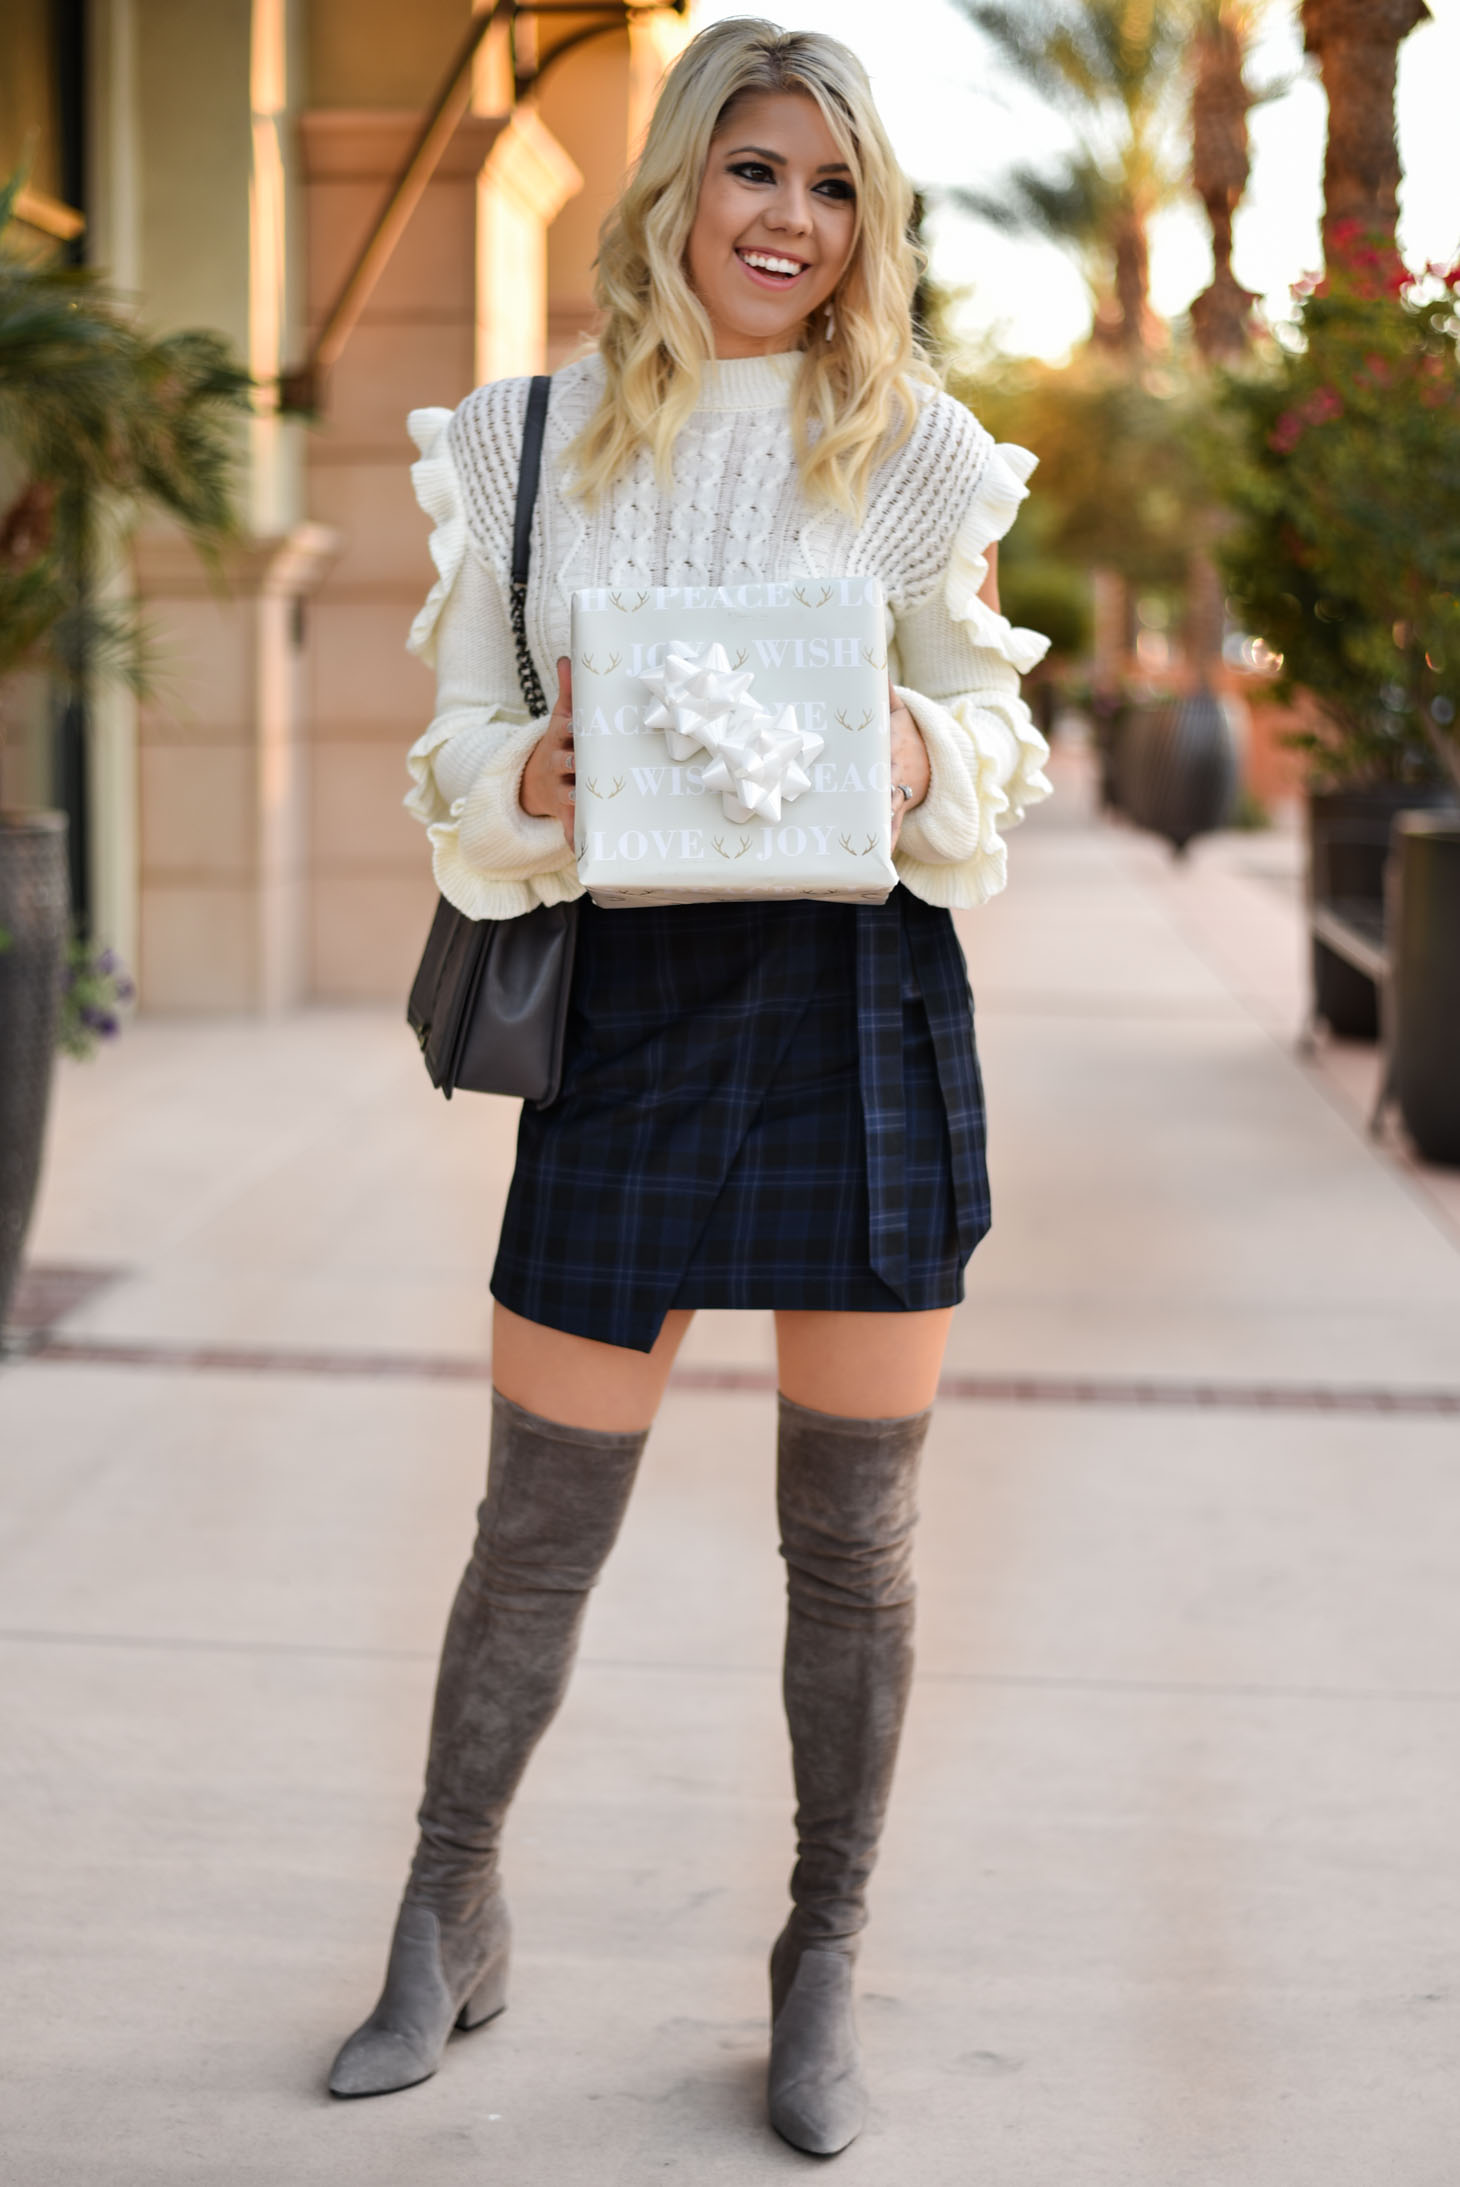 Erin Elizabeth of Wink and a Twirl Wearing Holiday Style